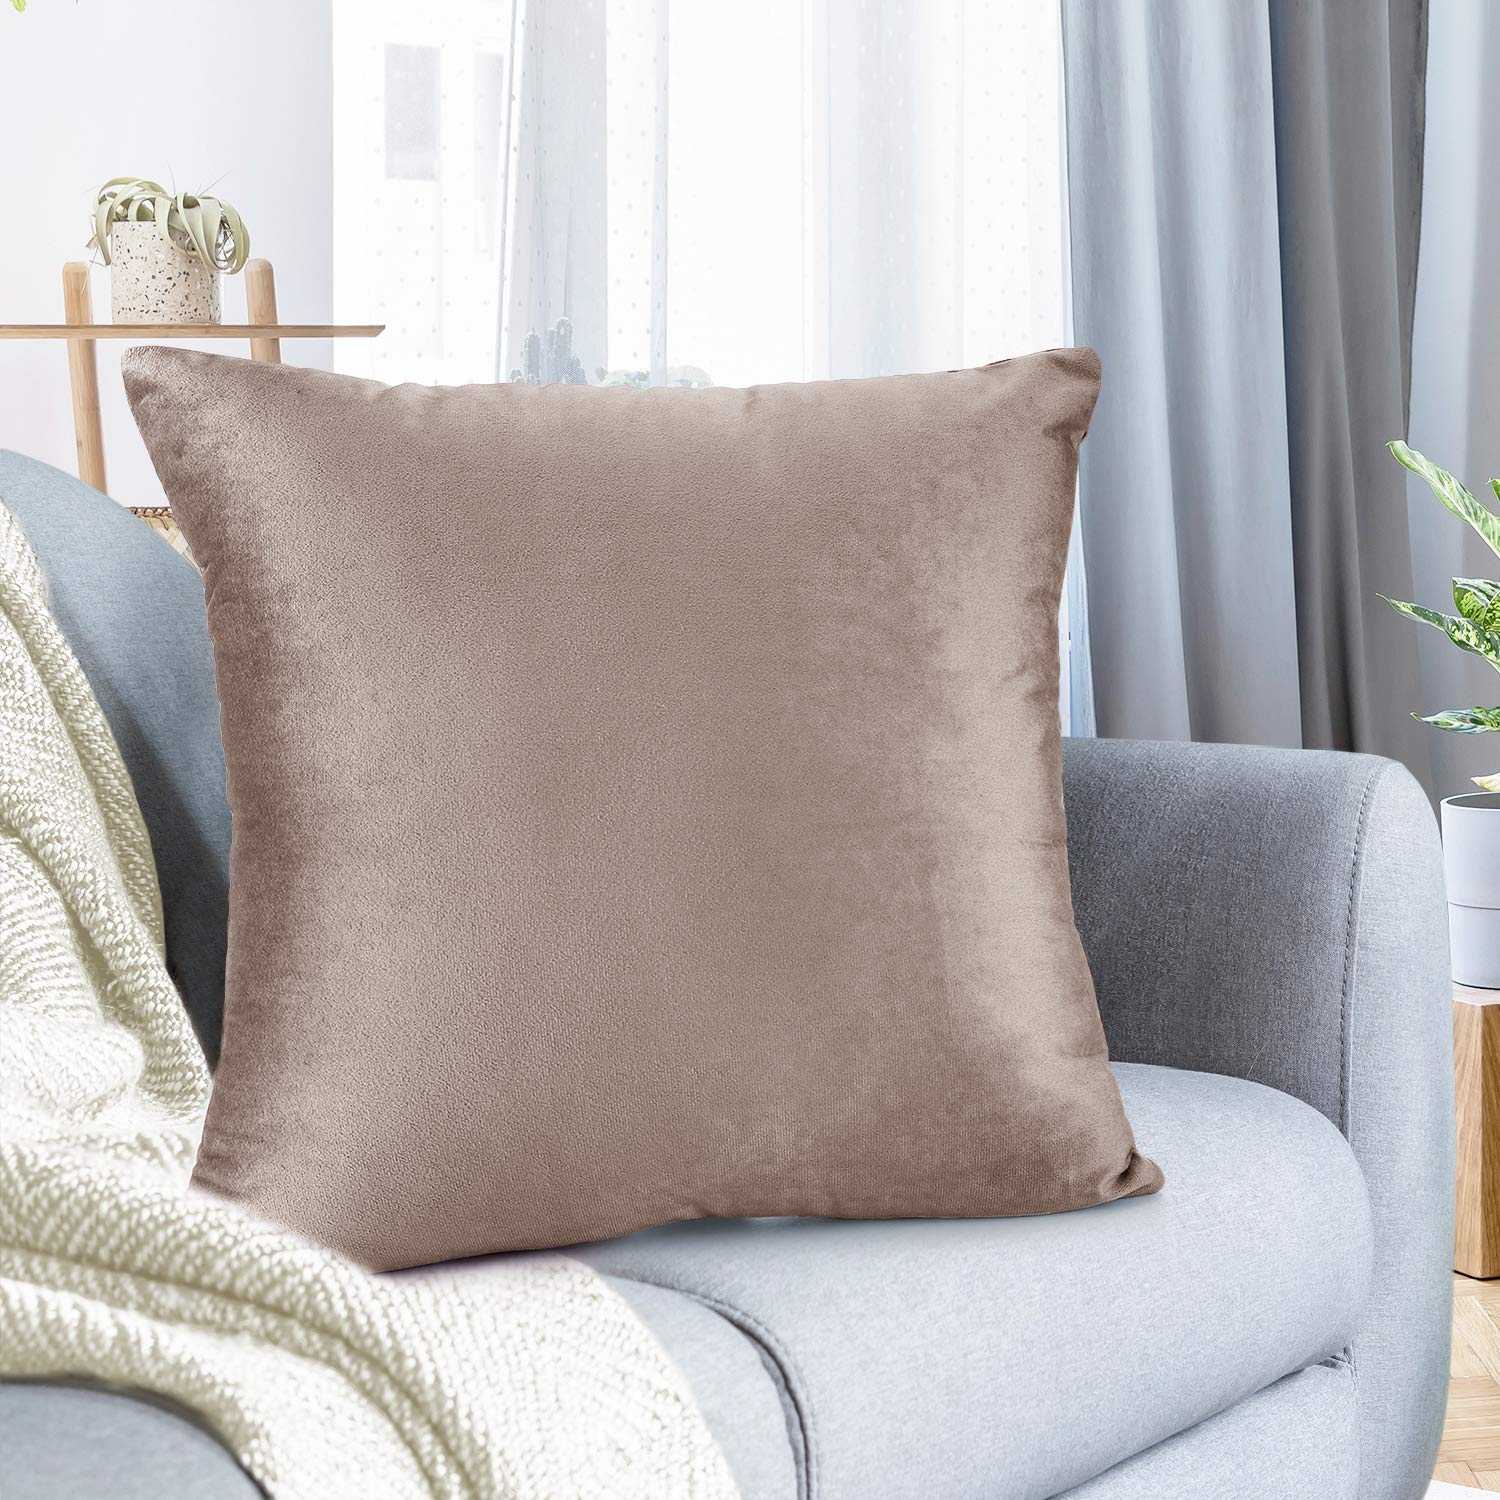 """Nestl Bedding Throw Pillow Cover 26"""" x 26"""" Soft Square Decorative Throw Pillow Covers Cozy Velvet Cushion Case for Sofa Couch Bedroom - Taupe Sand"""